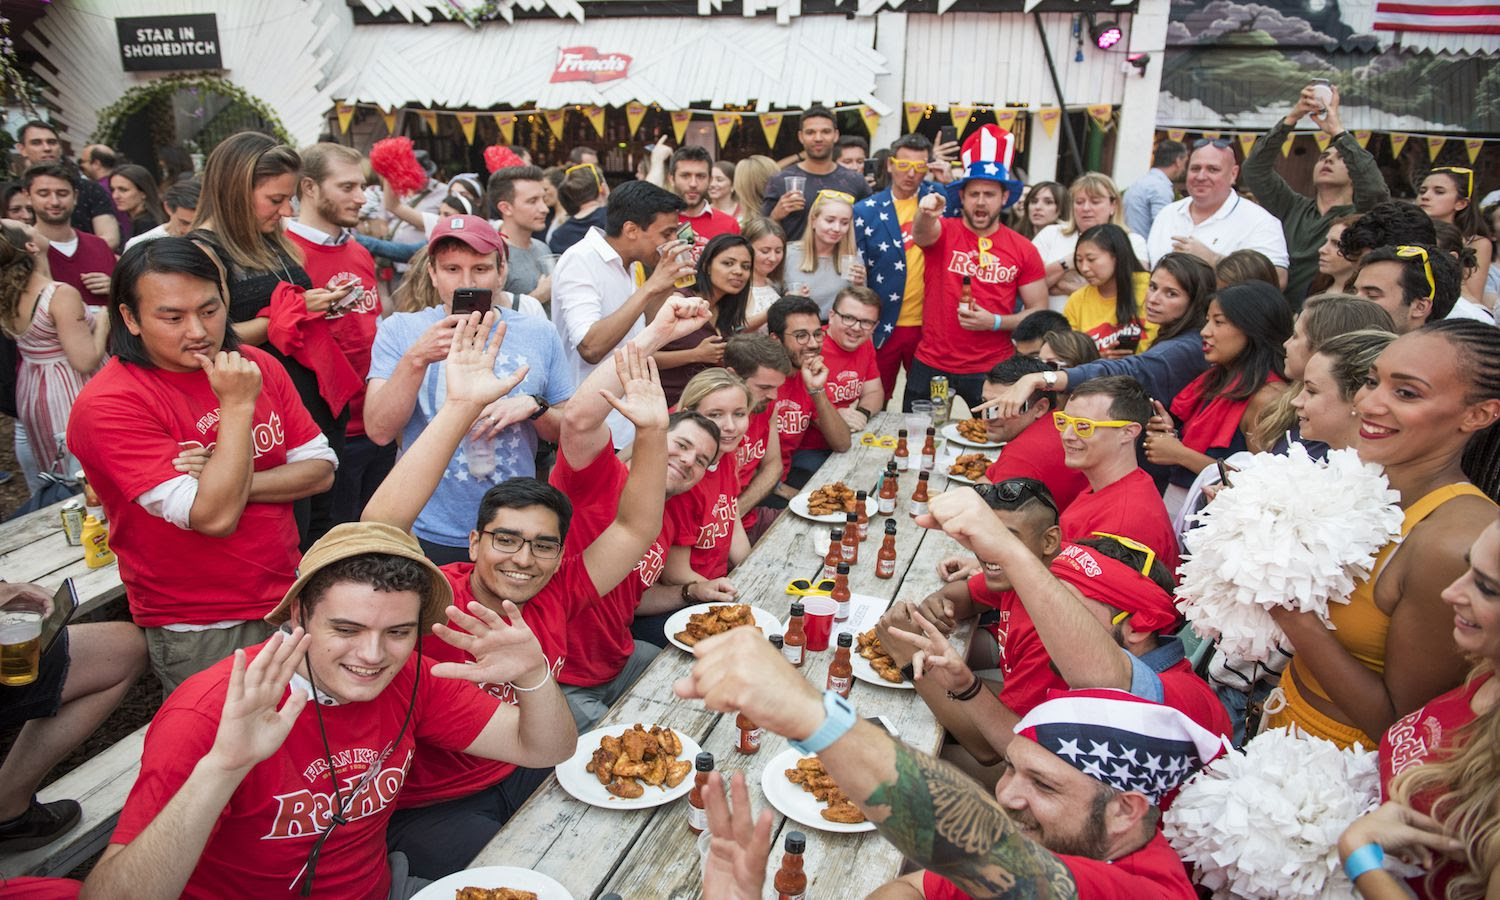 Frank's and French's July 4 party at Dinerama